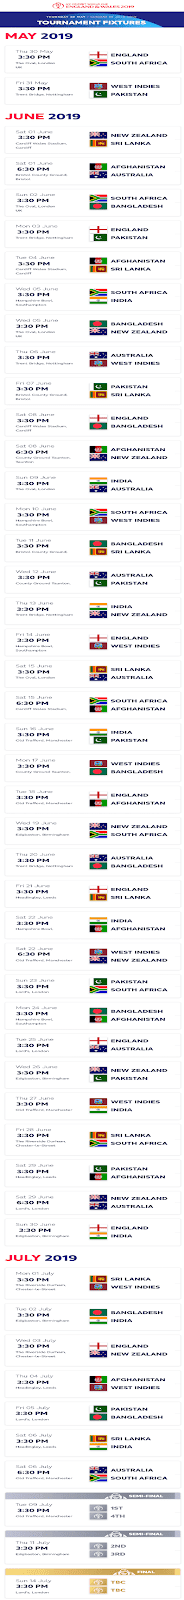 ICC World Cup Fixture 2019